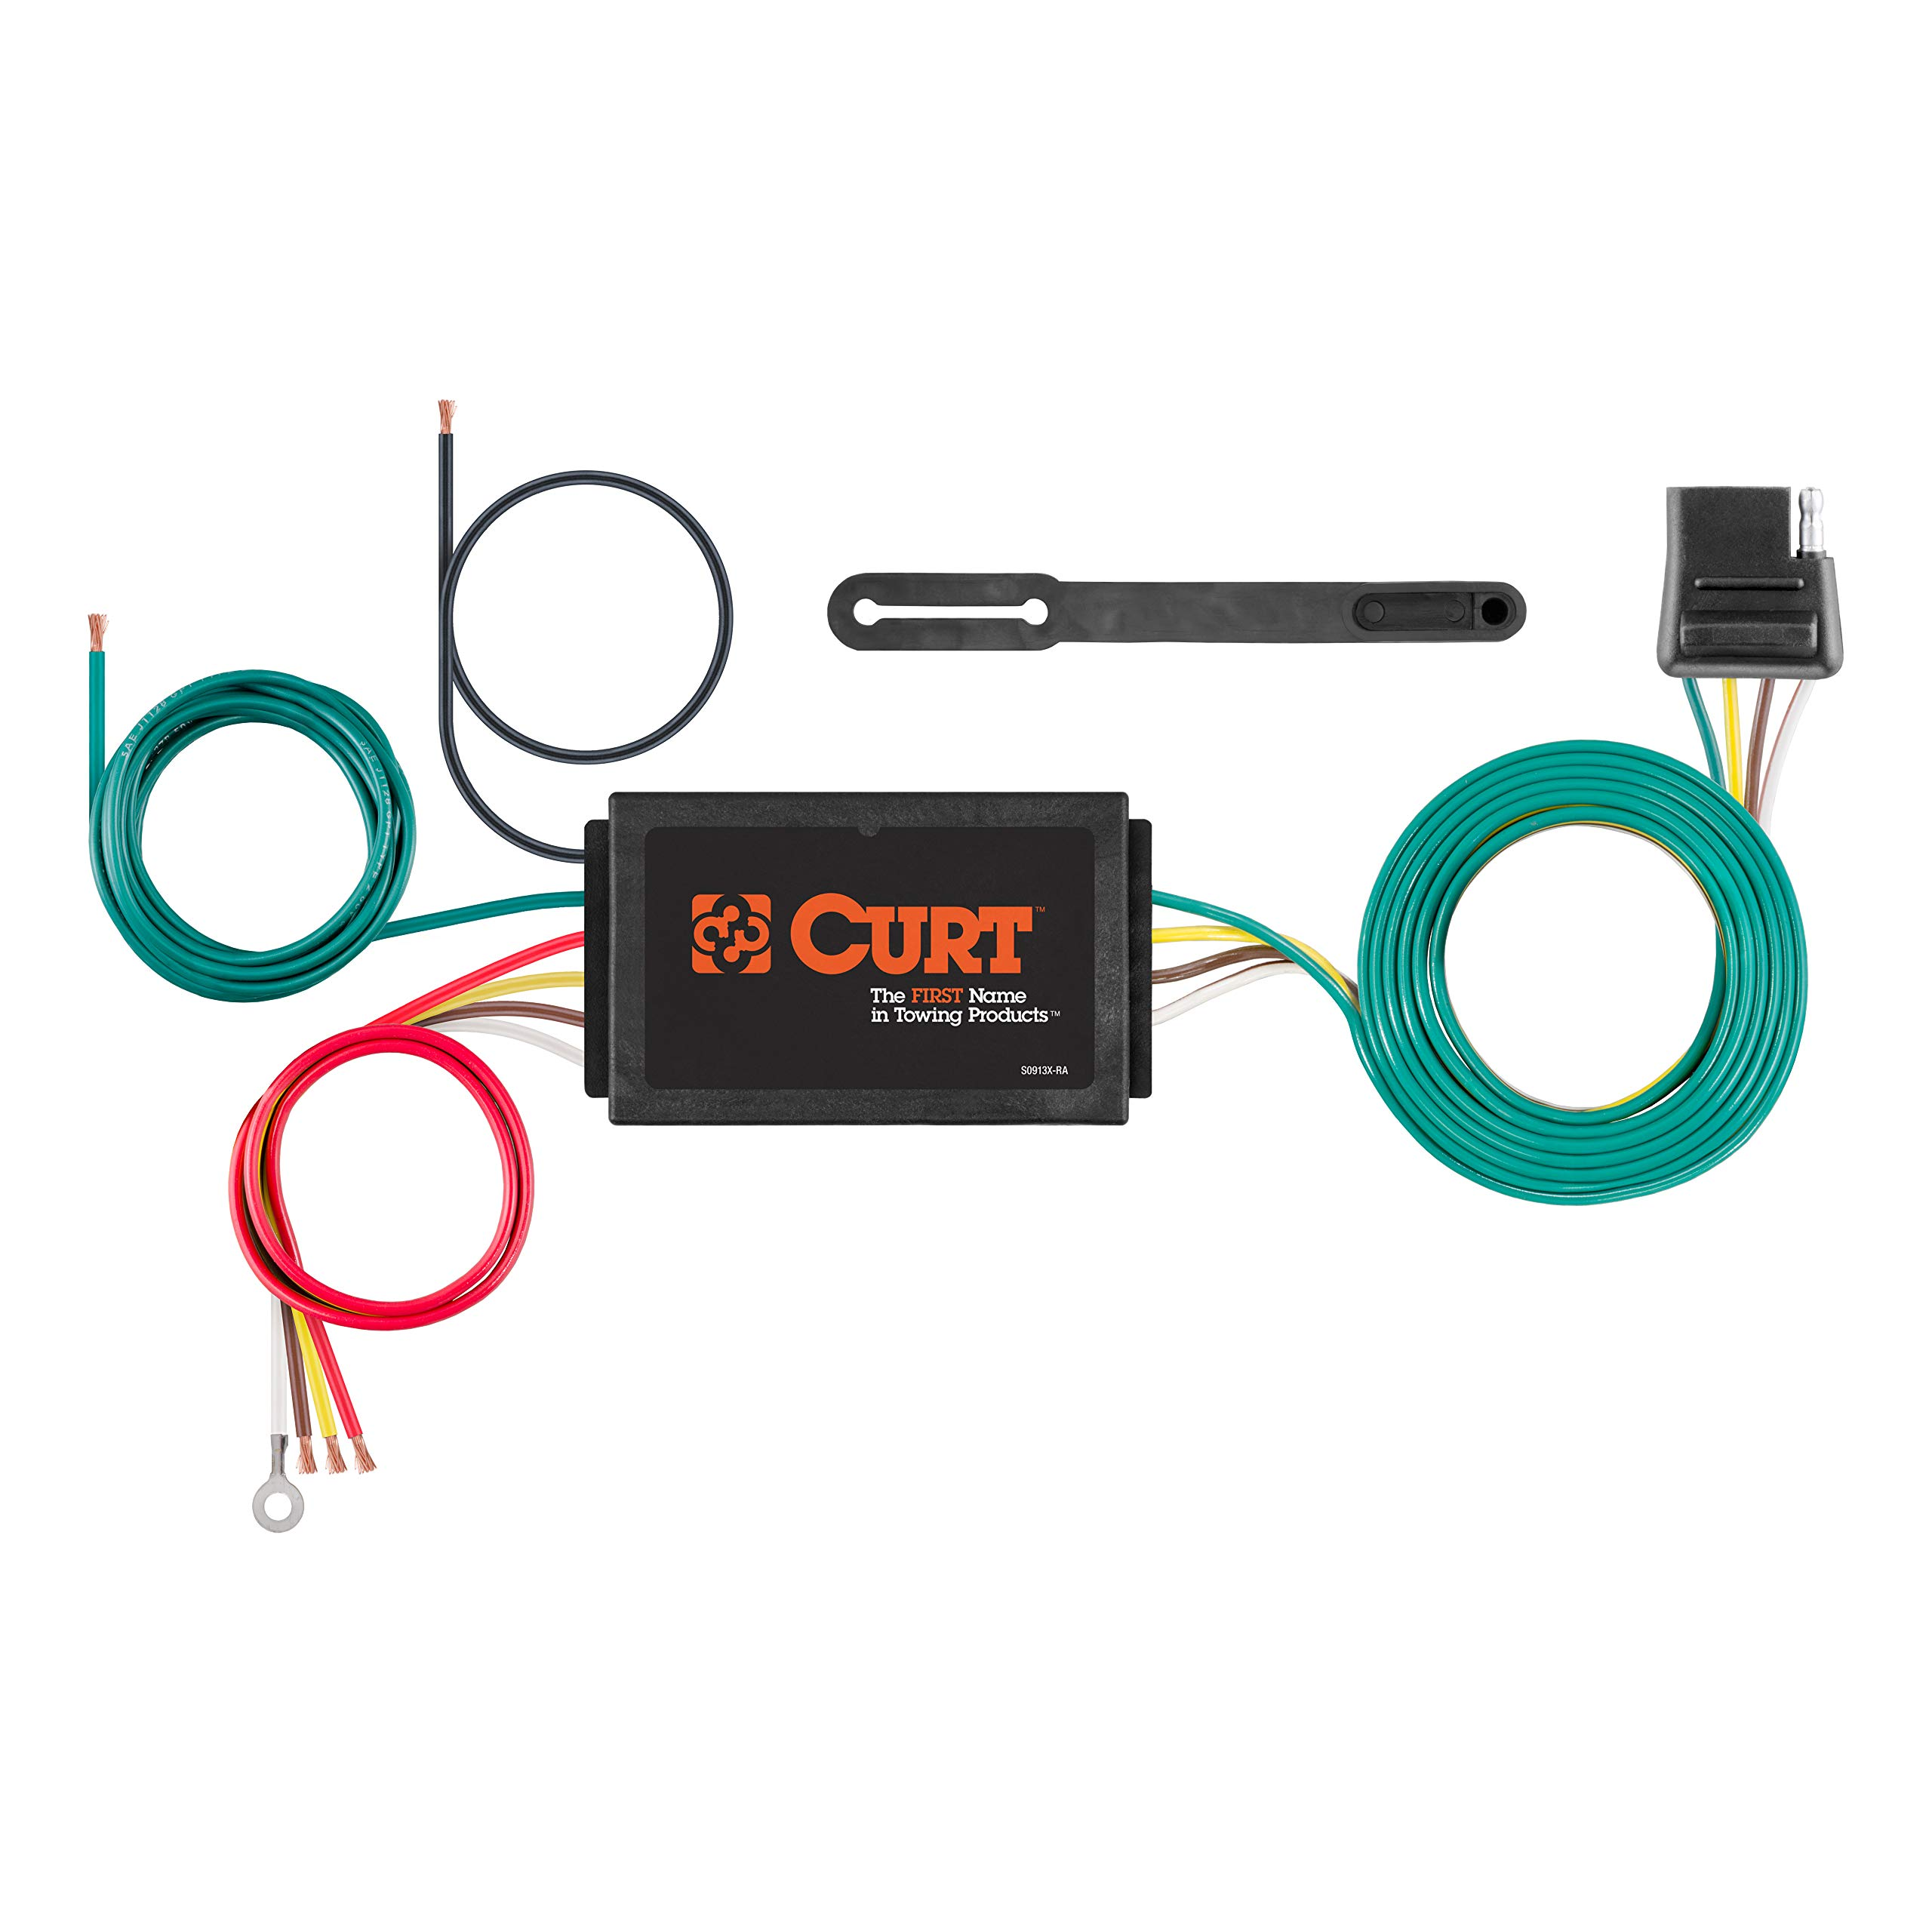 CURT 56146 Powered 3-to-2-Wire Splice-in Trailer Tail Light Converter with 4-Pin Wiring Harness by CURT